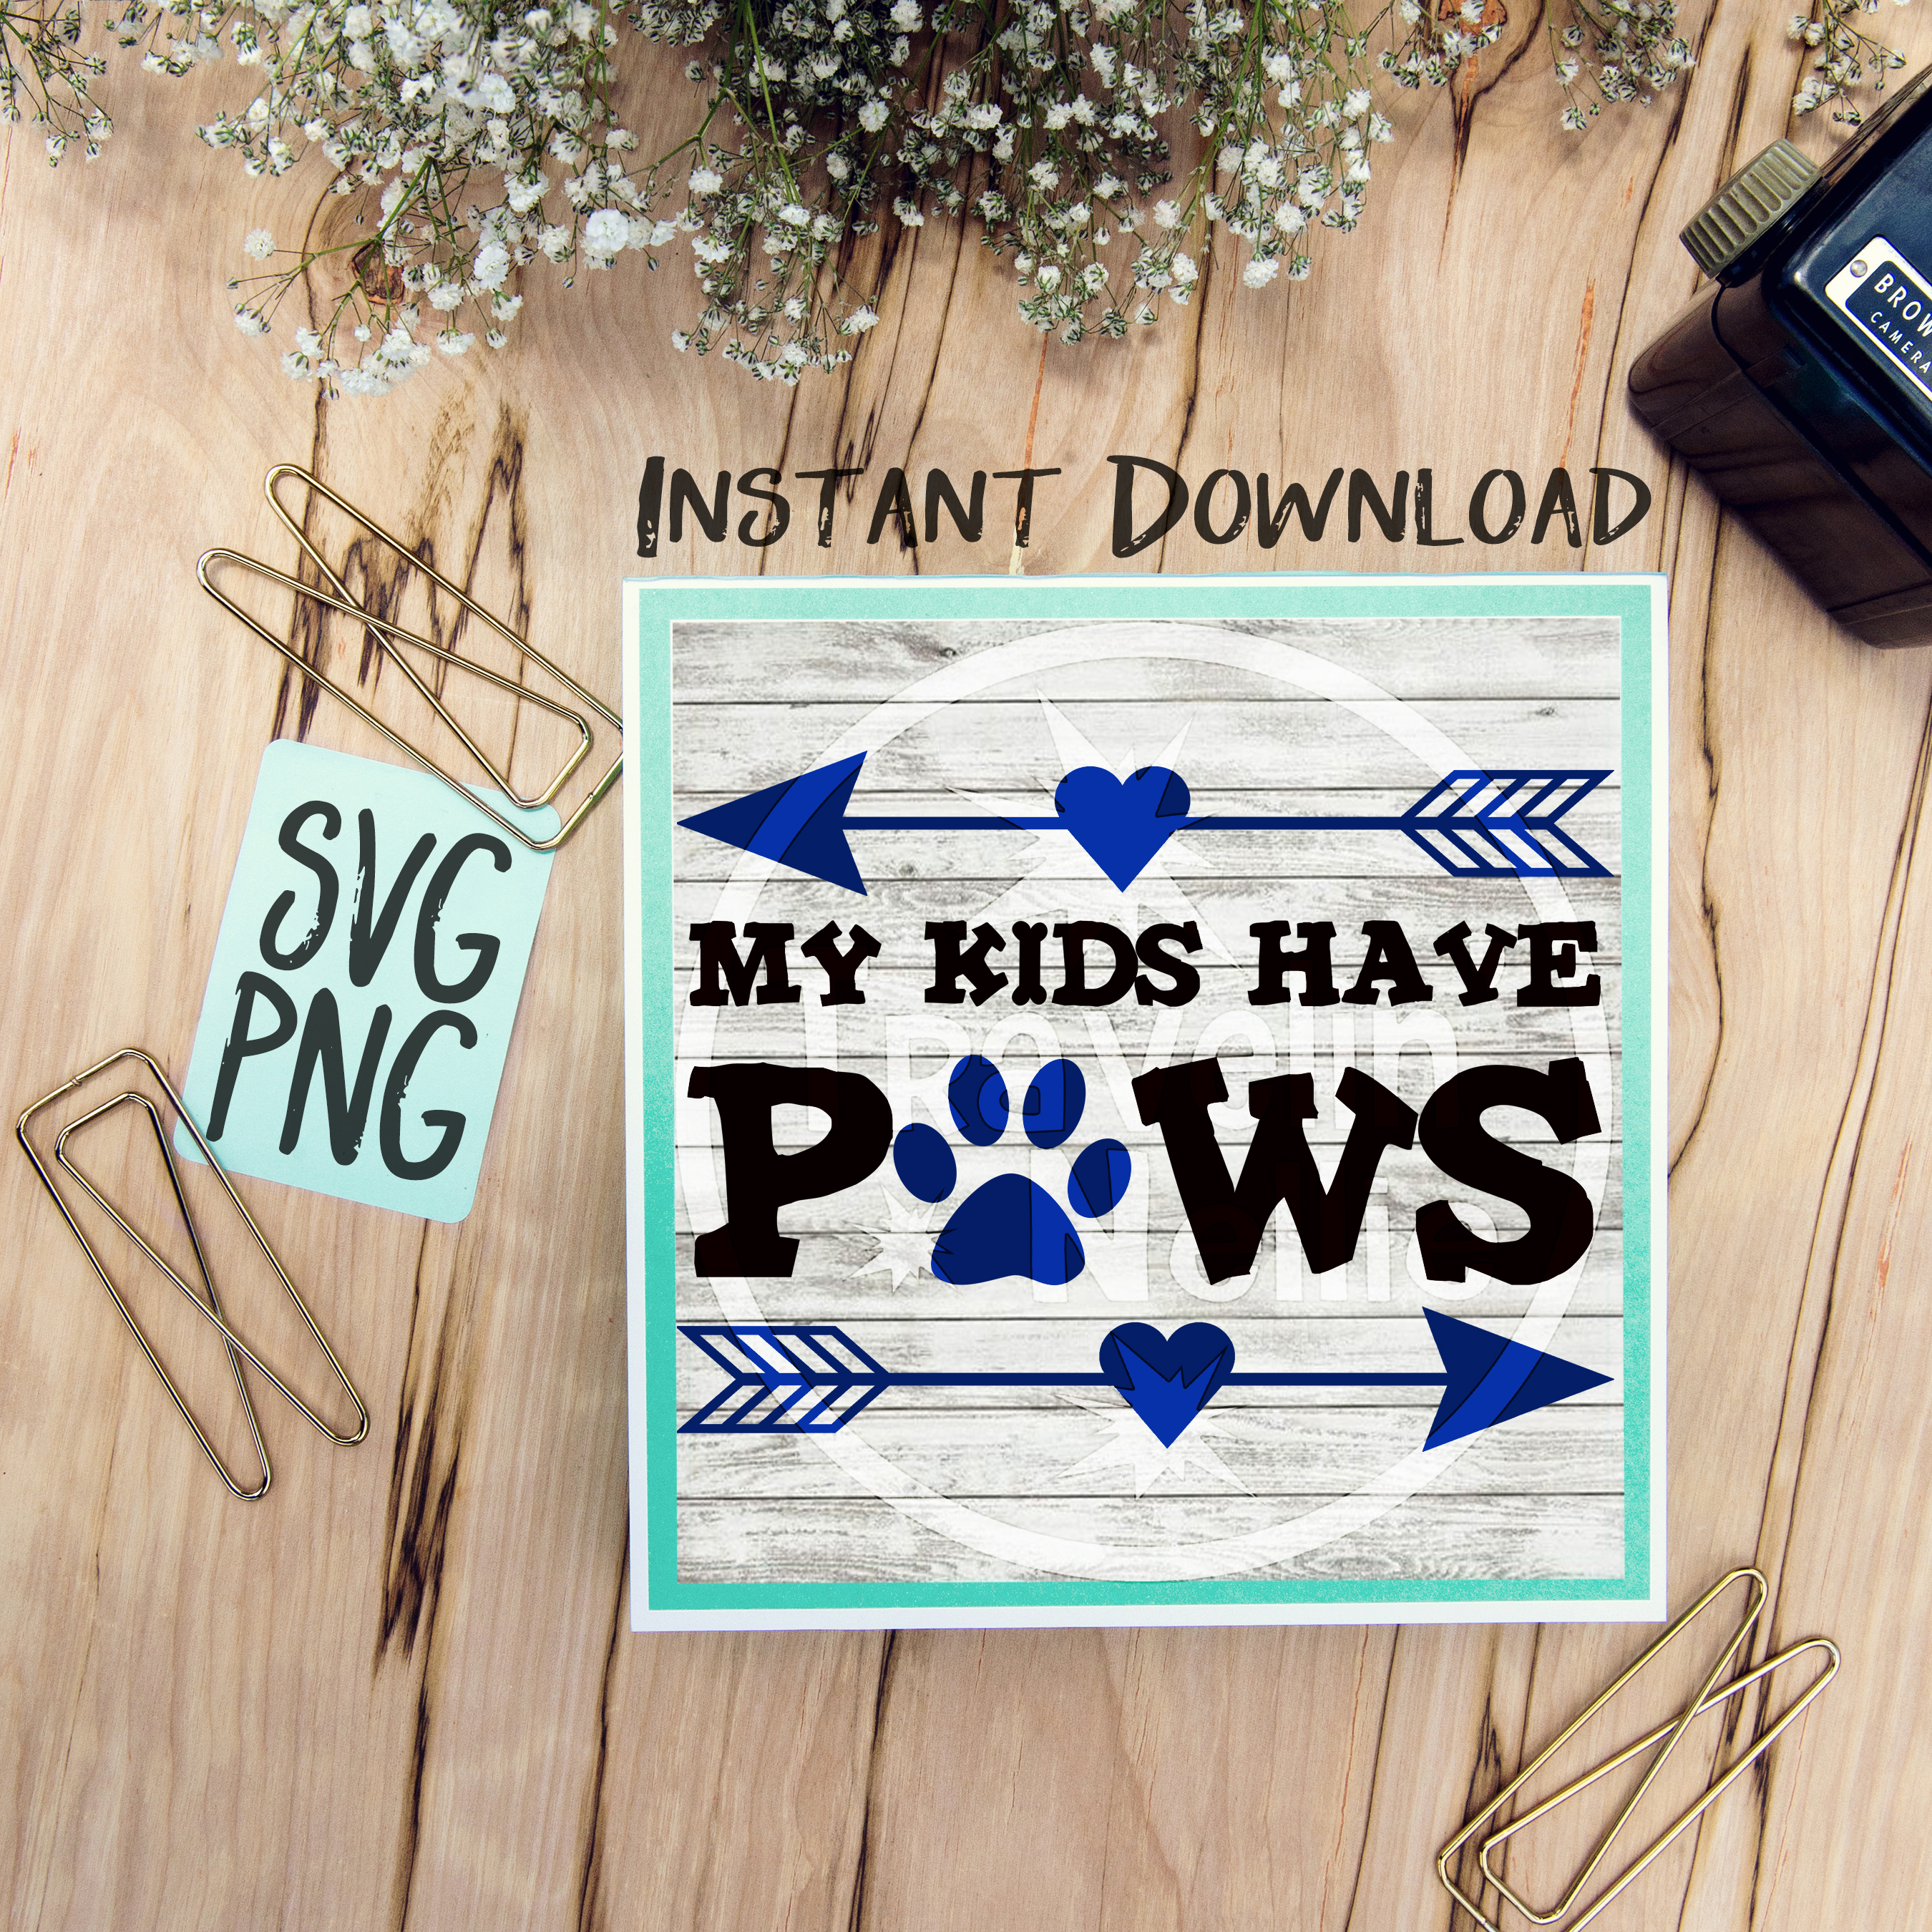 My Kids Have Paws Svg Png Cricut Cameo Silhouette Brother Scan Cut Crafters Cutting Files For Vinyl Cutting Sign Making 63571 Svgs Design Bundles